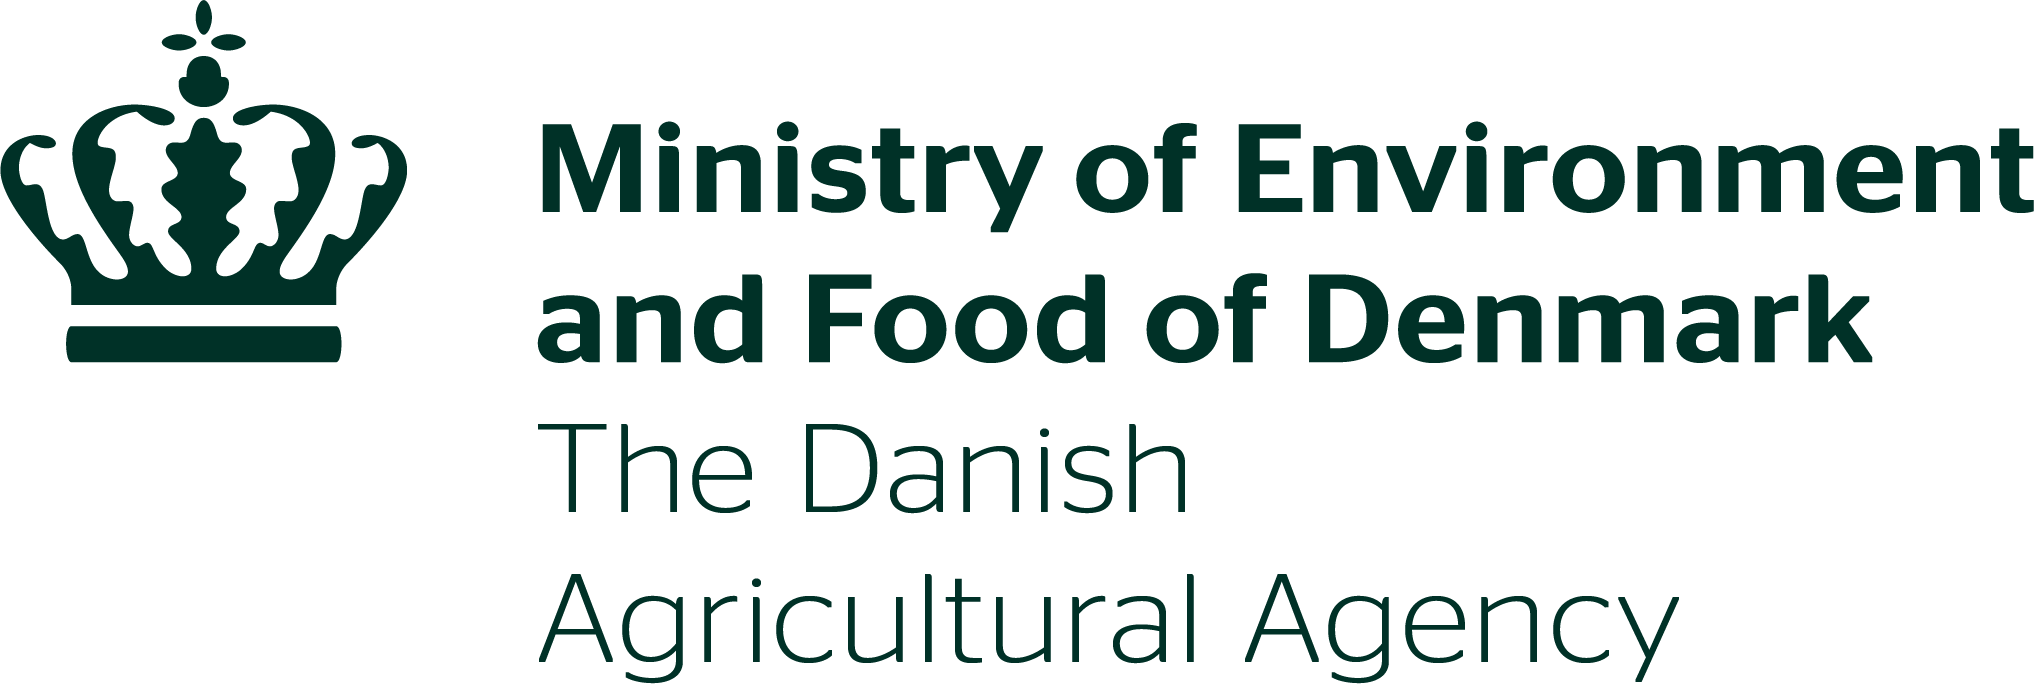 The Danish Agricultural Agency